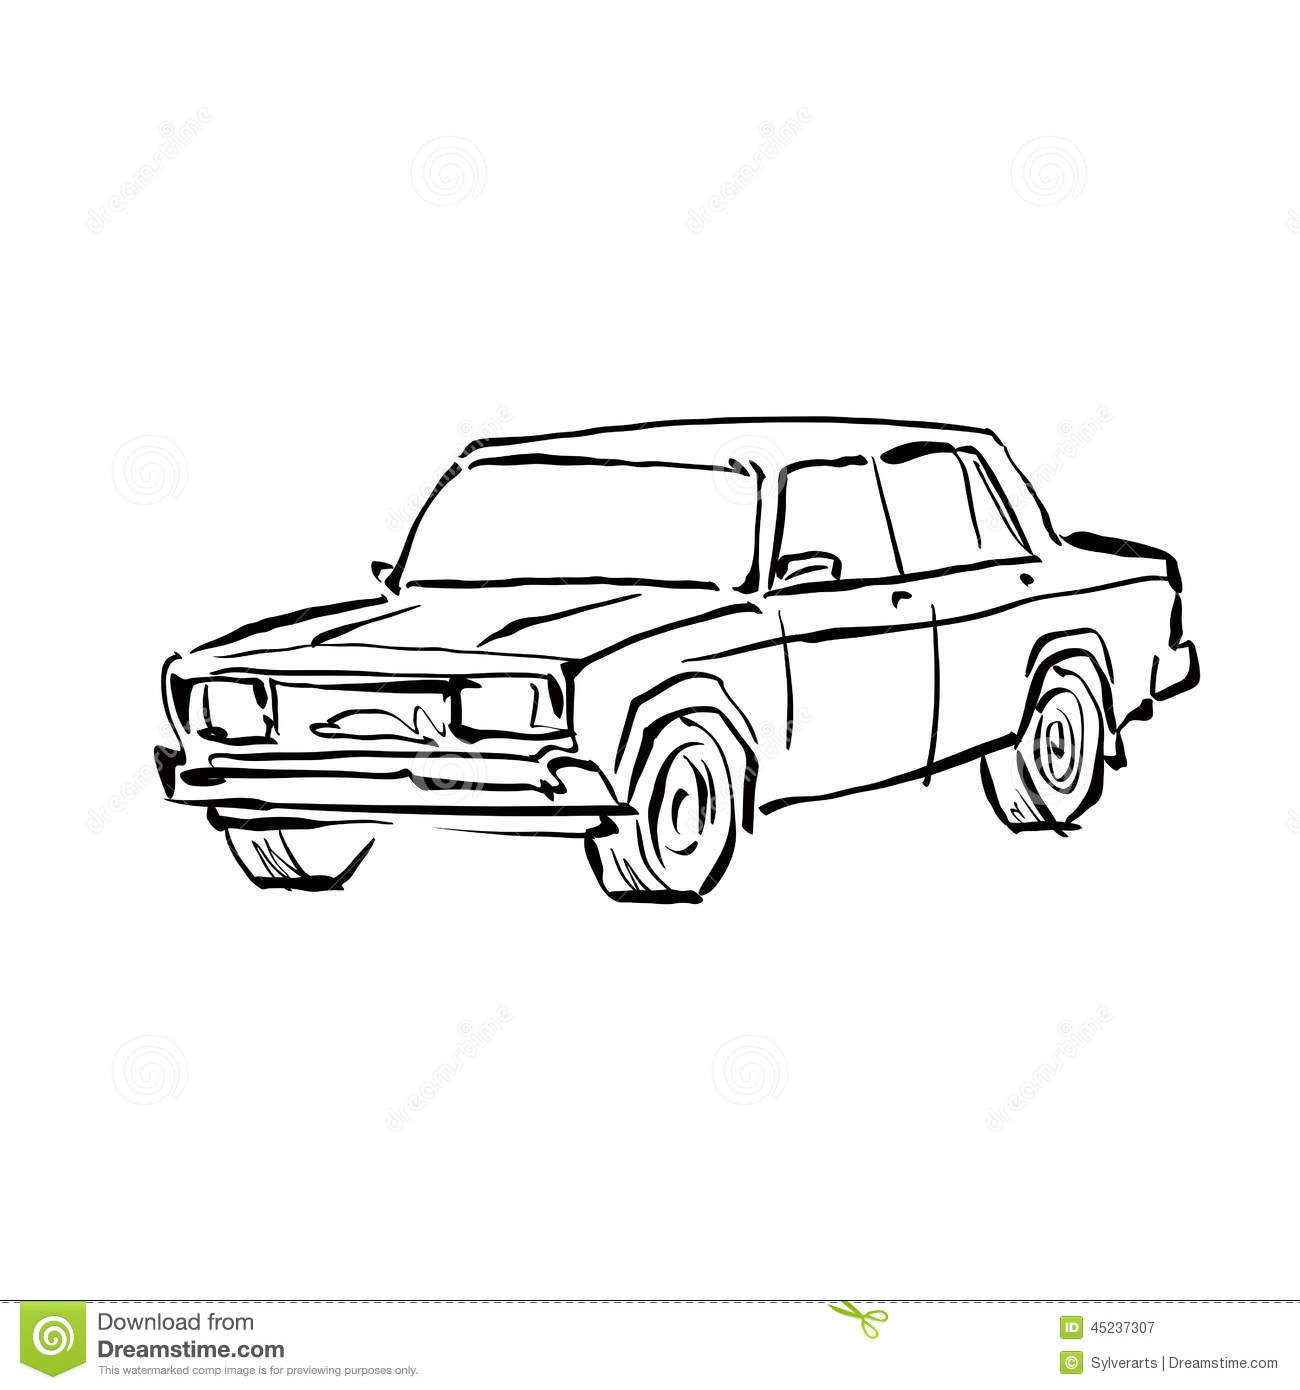 Monochrome Hand Drawn Car On White Background Stock Vector